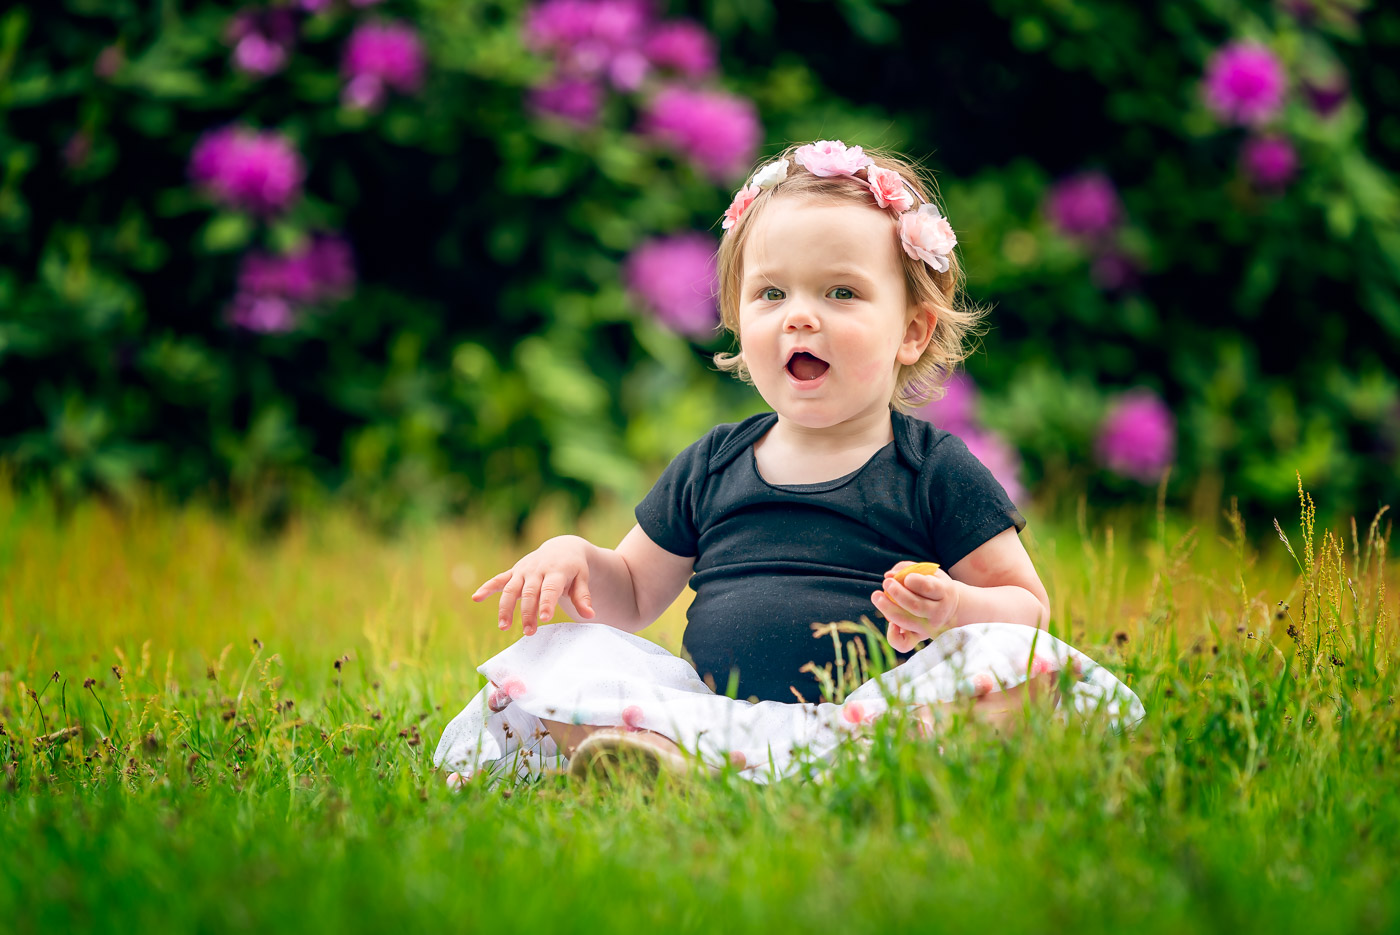 Gorgeous and adorable little girl sitting on grass with purple rhododendrons behind her